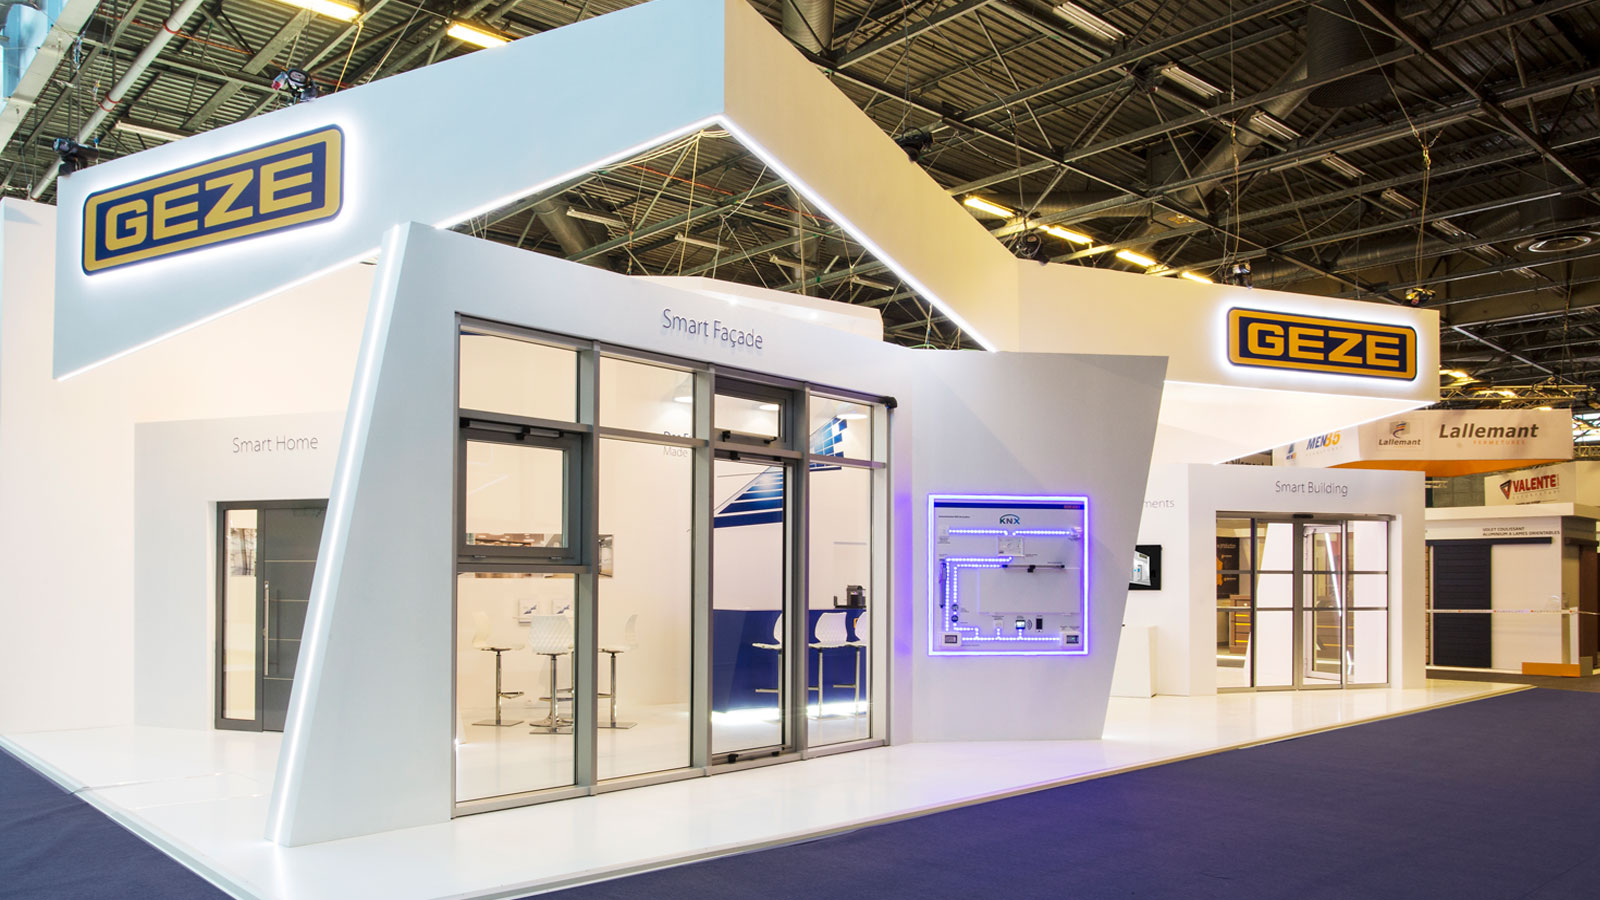 Stand-Design-Geze-Batimat-LED edge